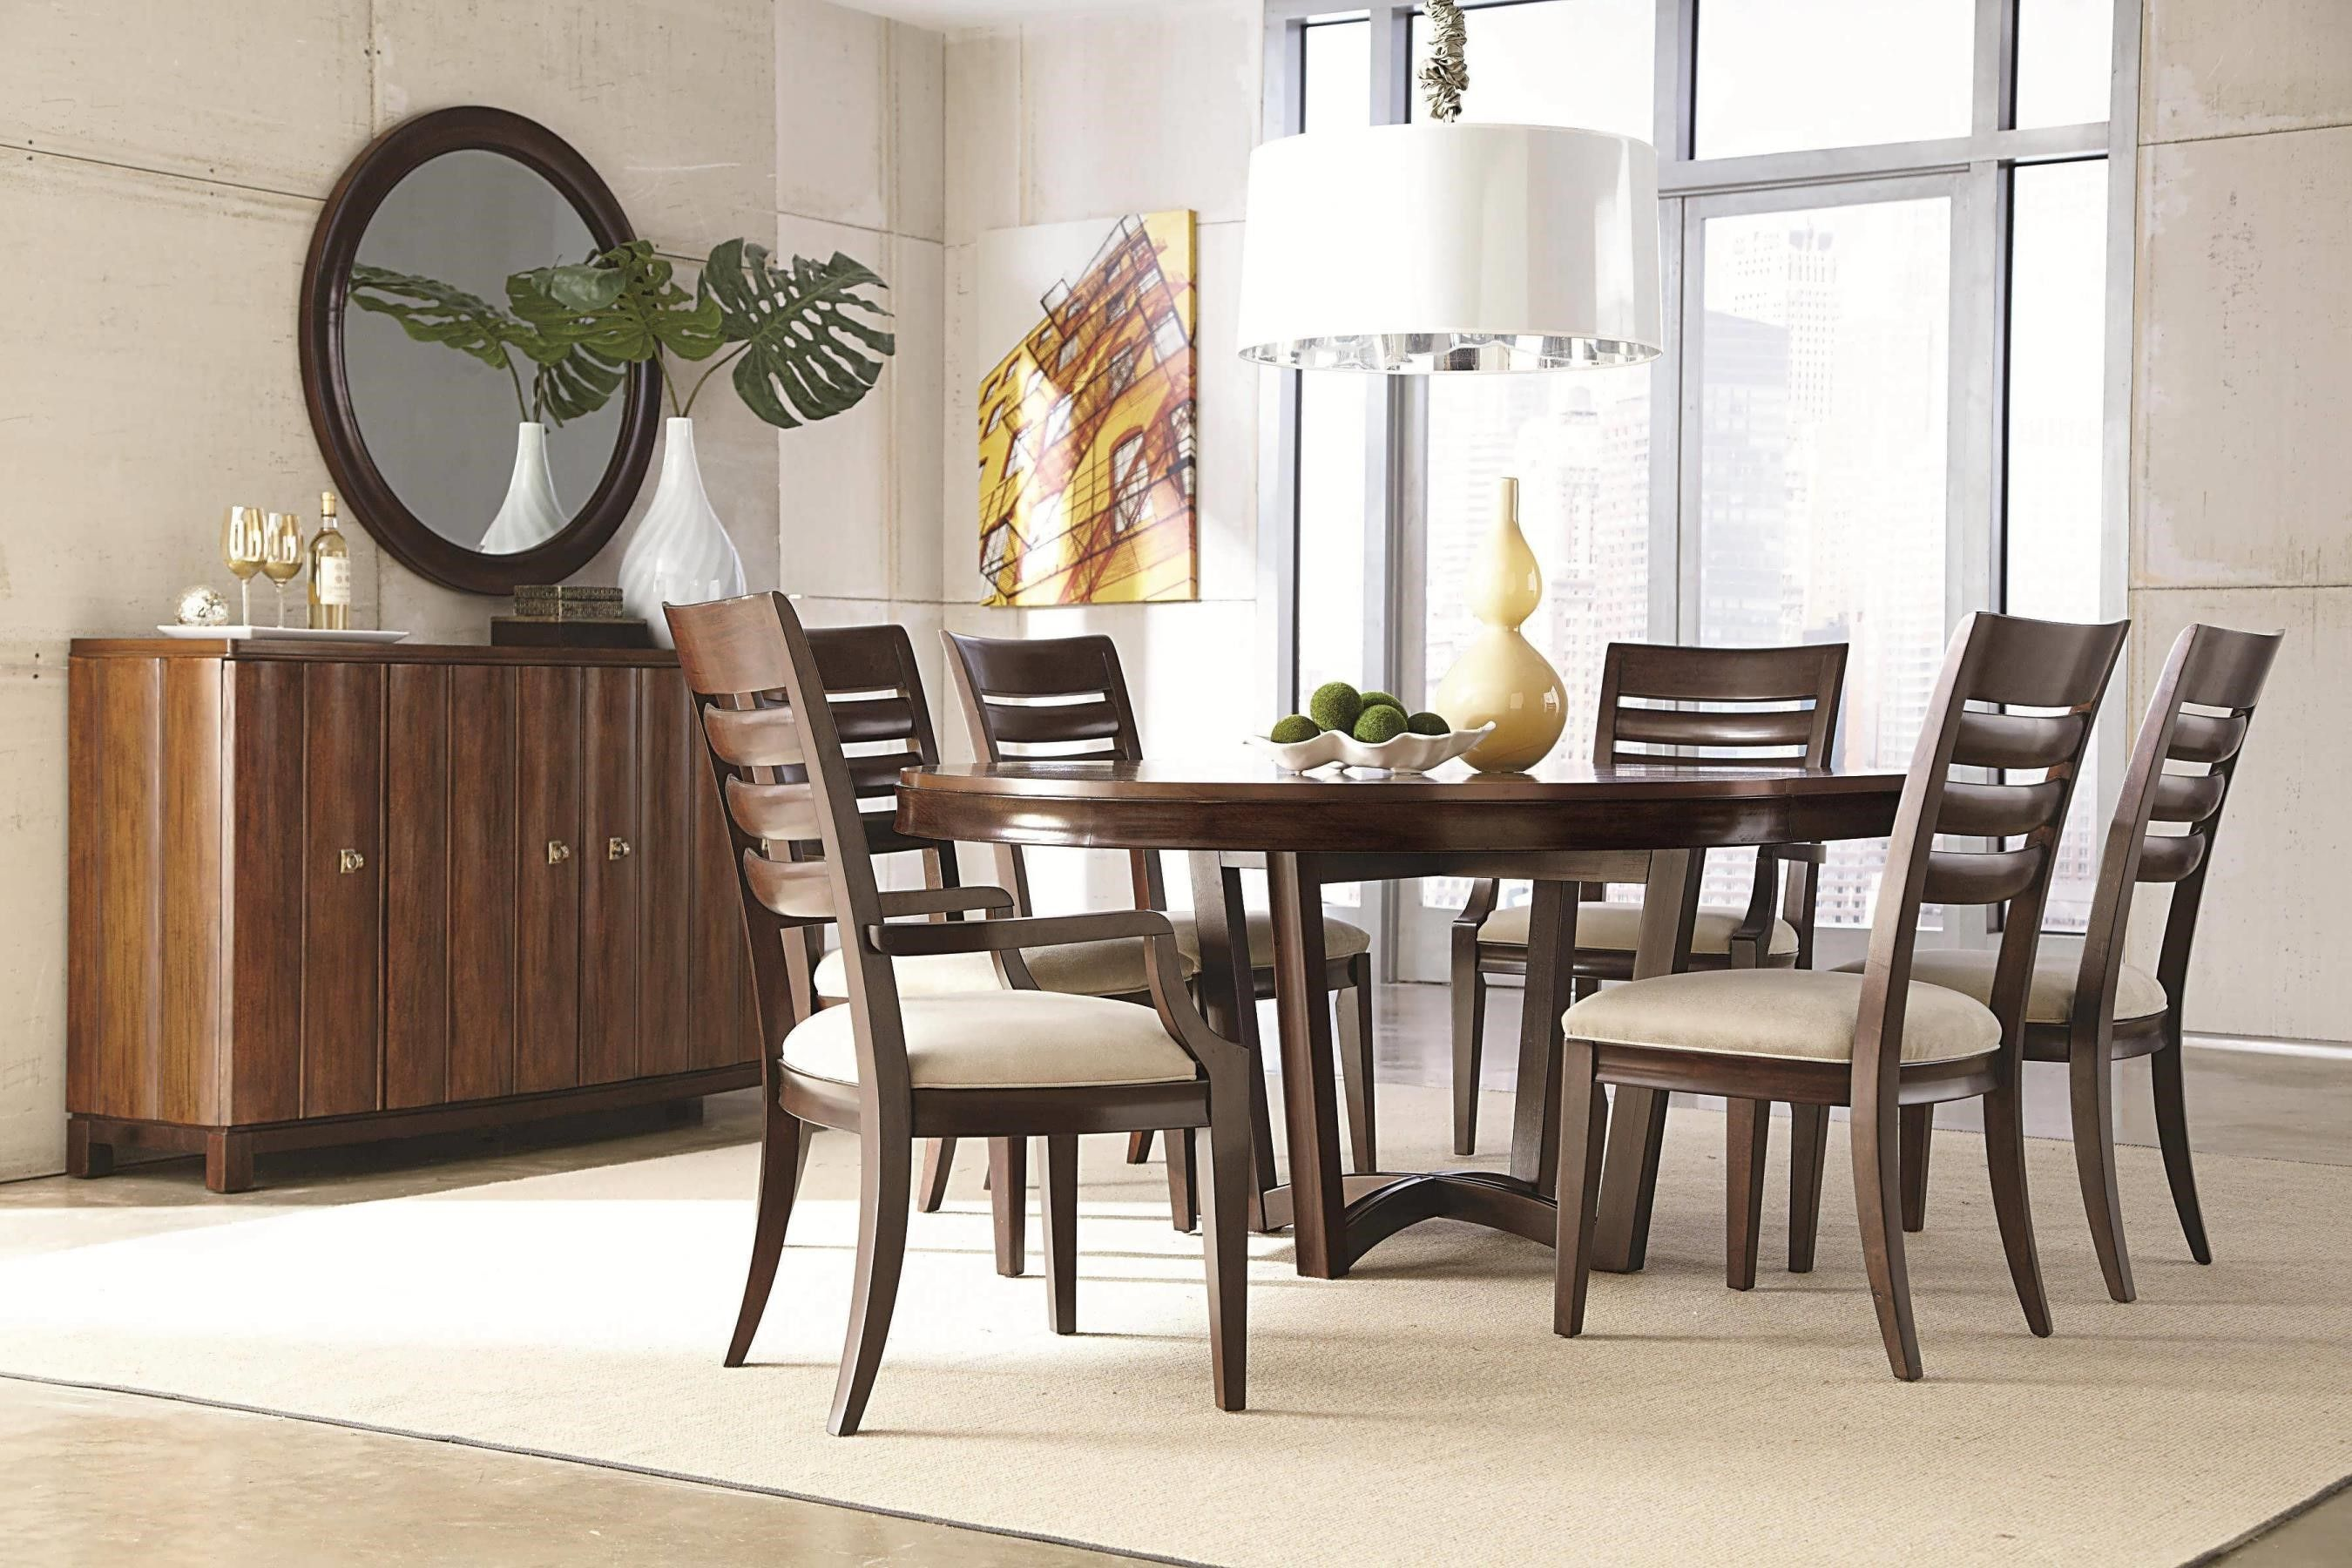 Superbe Simple Wooden Cabinet Placed Near Oak Round Dining Table For 6 And Wooden  Chairs Under White